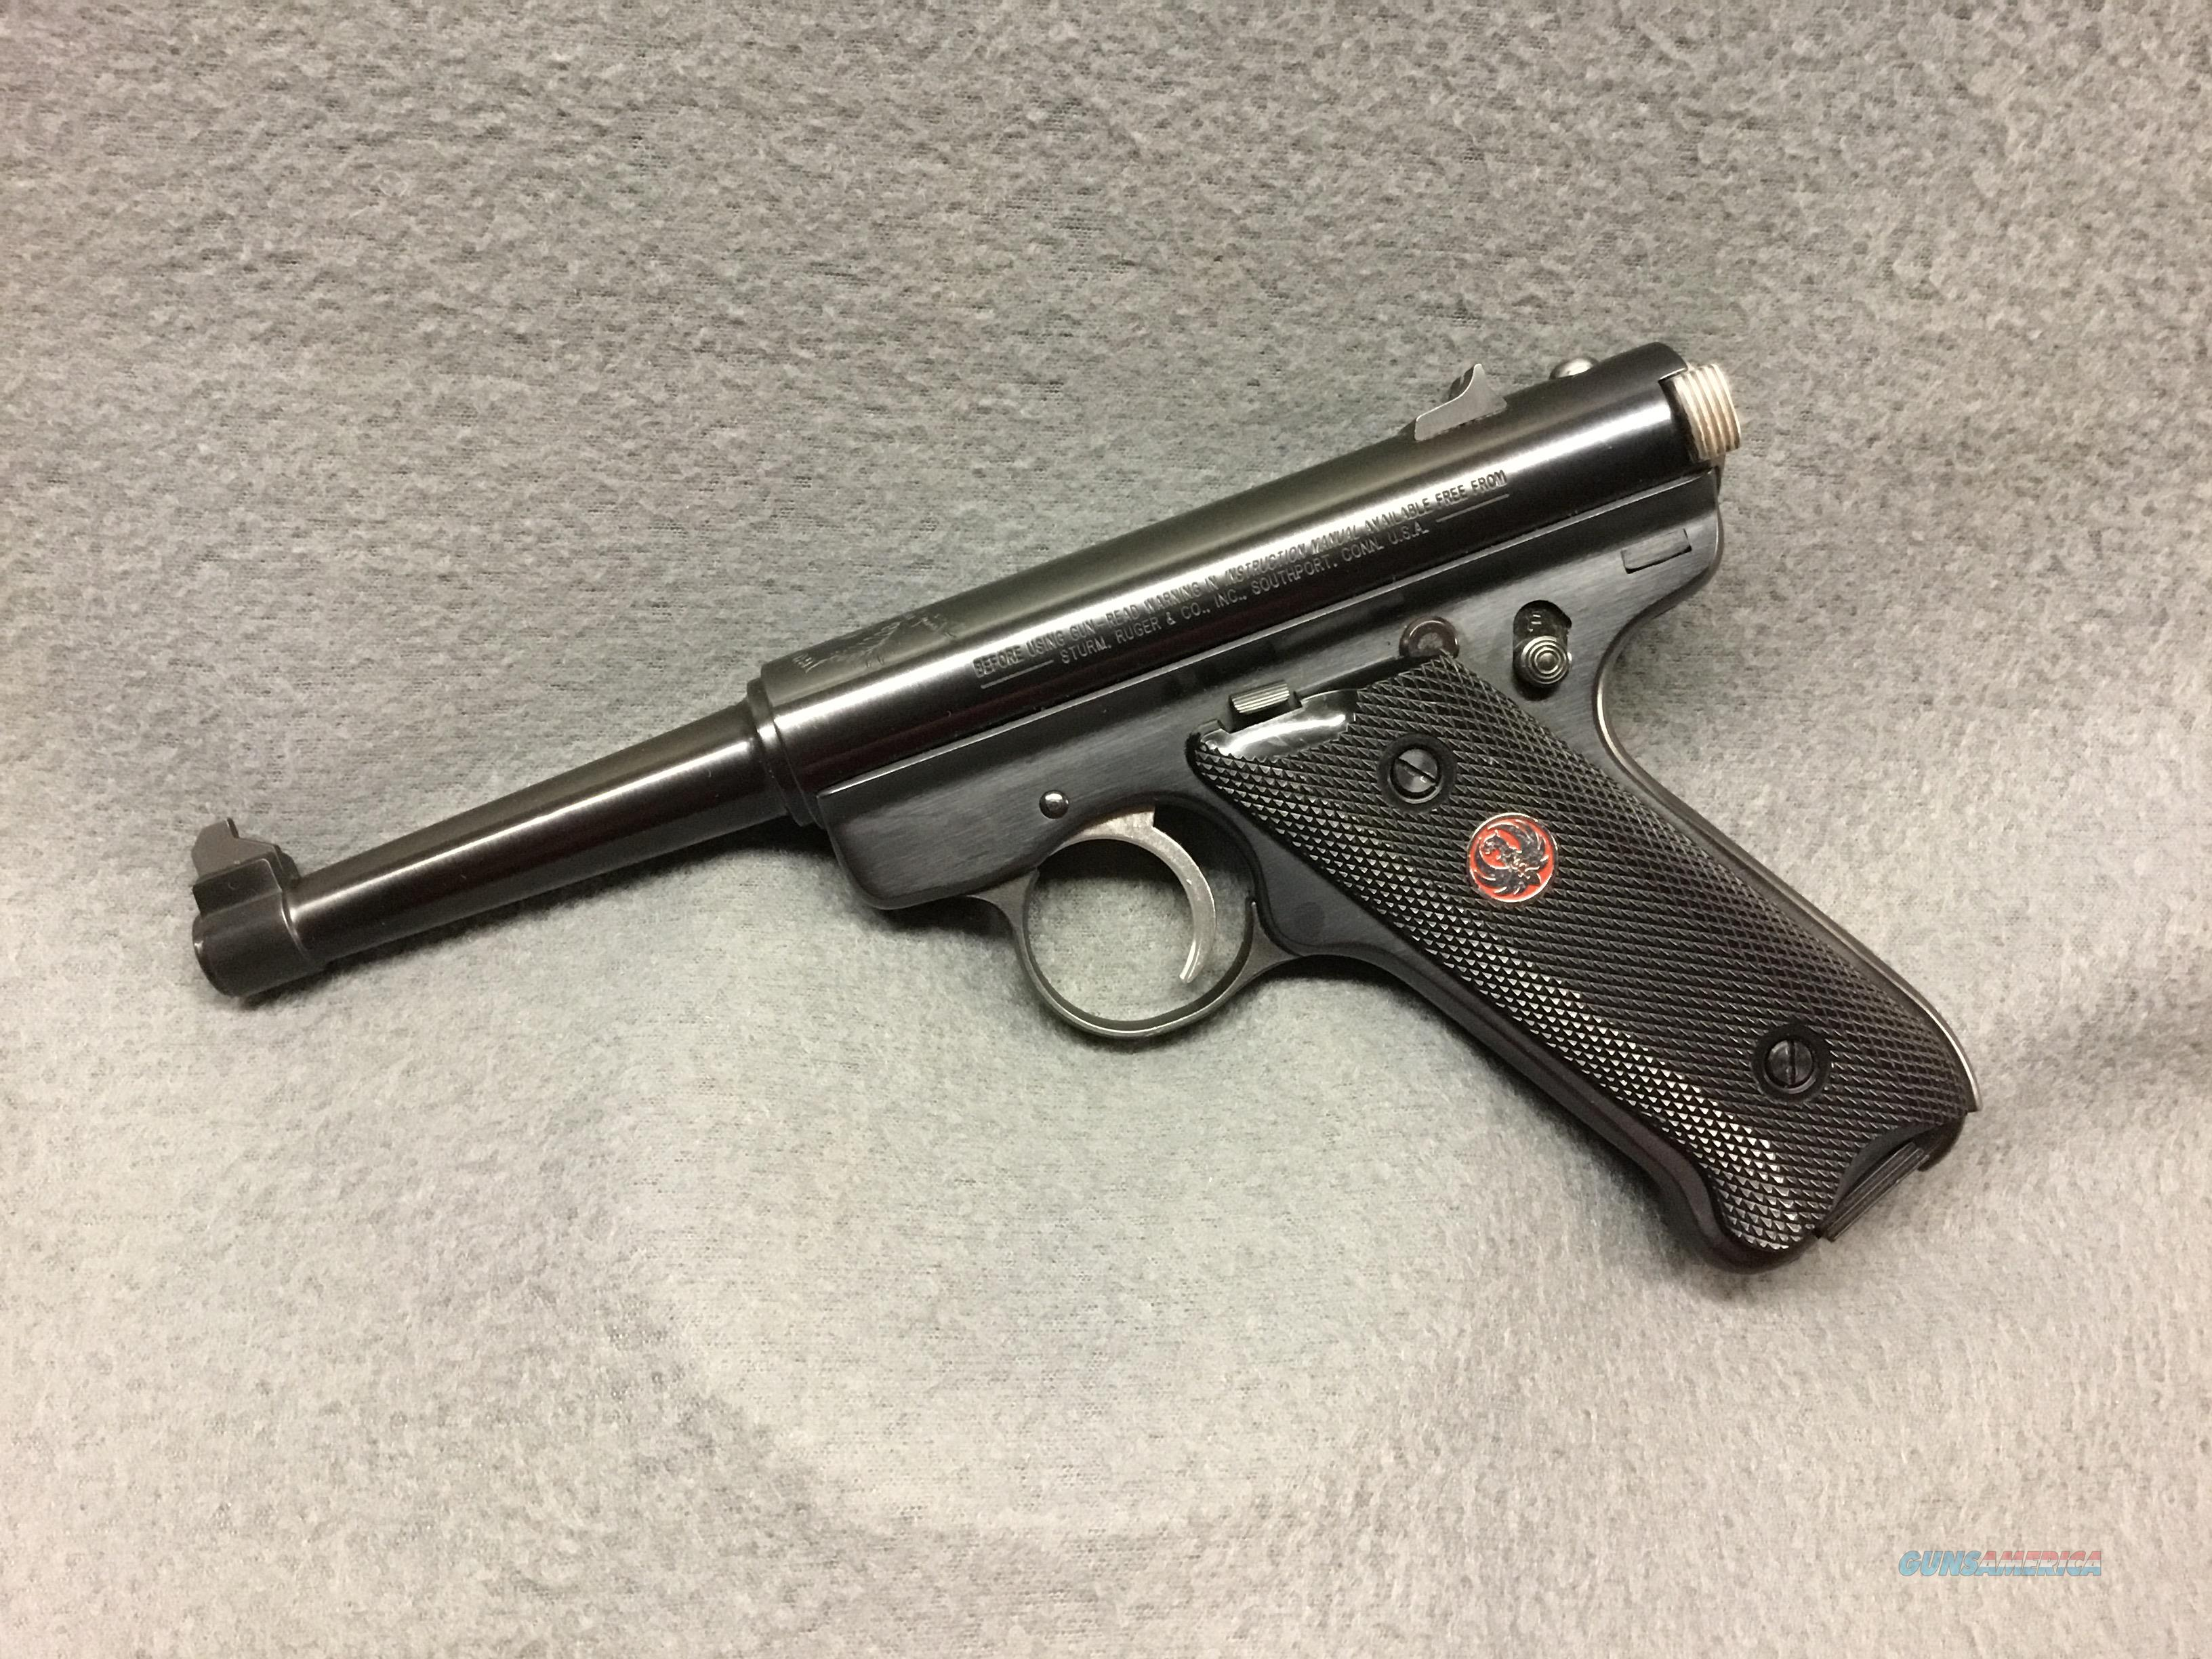 RUGER MKII    50TH ANNIVERSARY   EDITION    LIKE NEW   Guns > Pistols > Ruger Semi-Auto Pistols > Mark I/II/III/IV Family